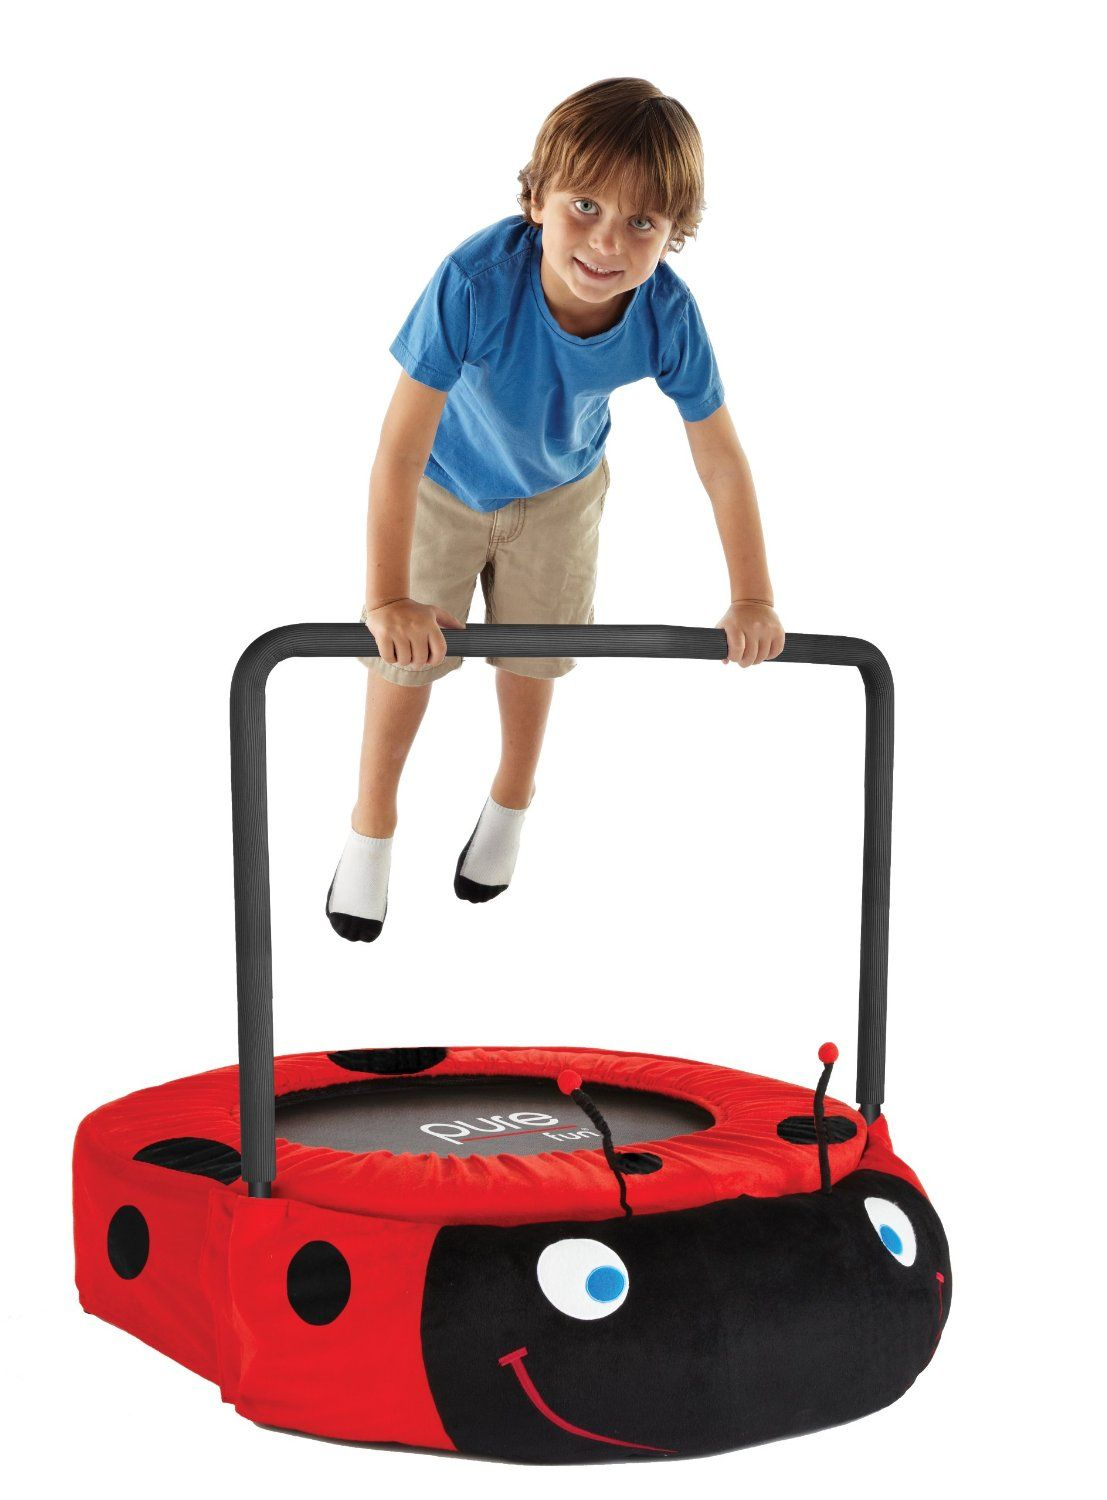 Best Gifts And Toys For 5 Year Old Boys Kids Trampoline Trampoline Ladybug